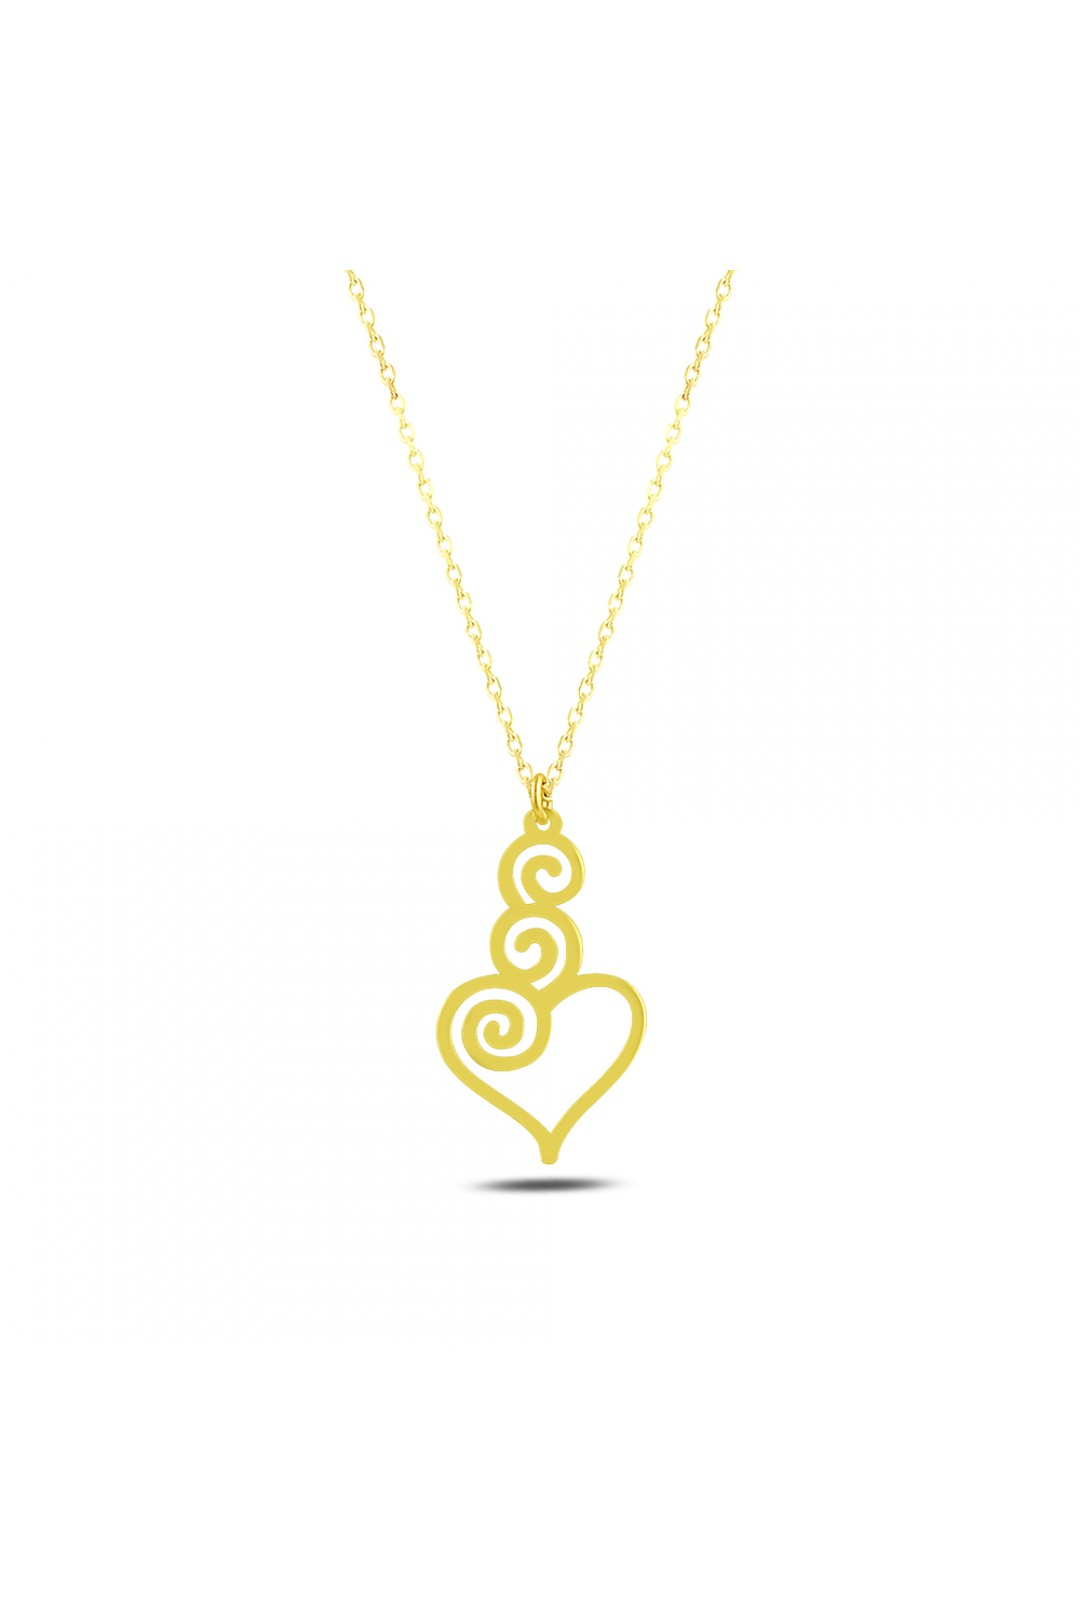 HEARTS AND CIRCLES NECKLACE